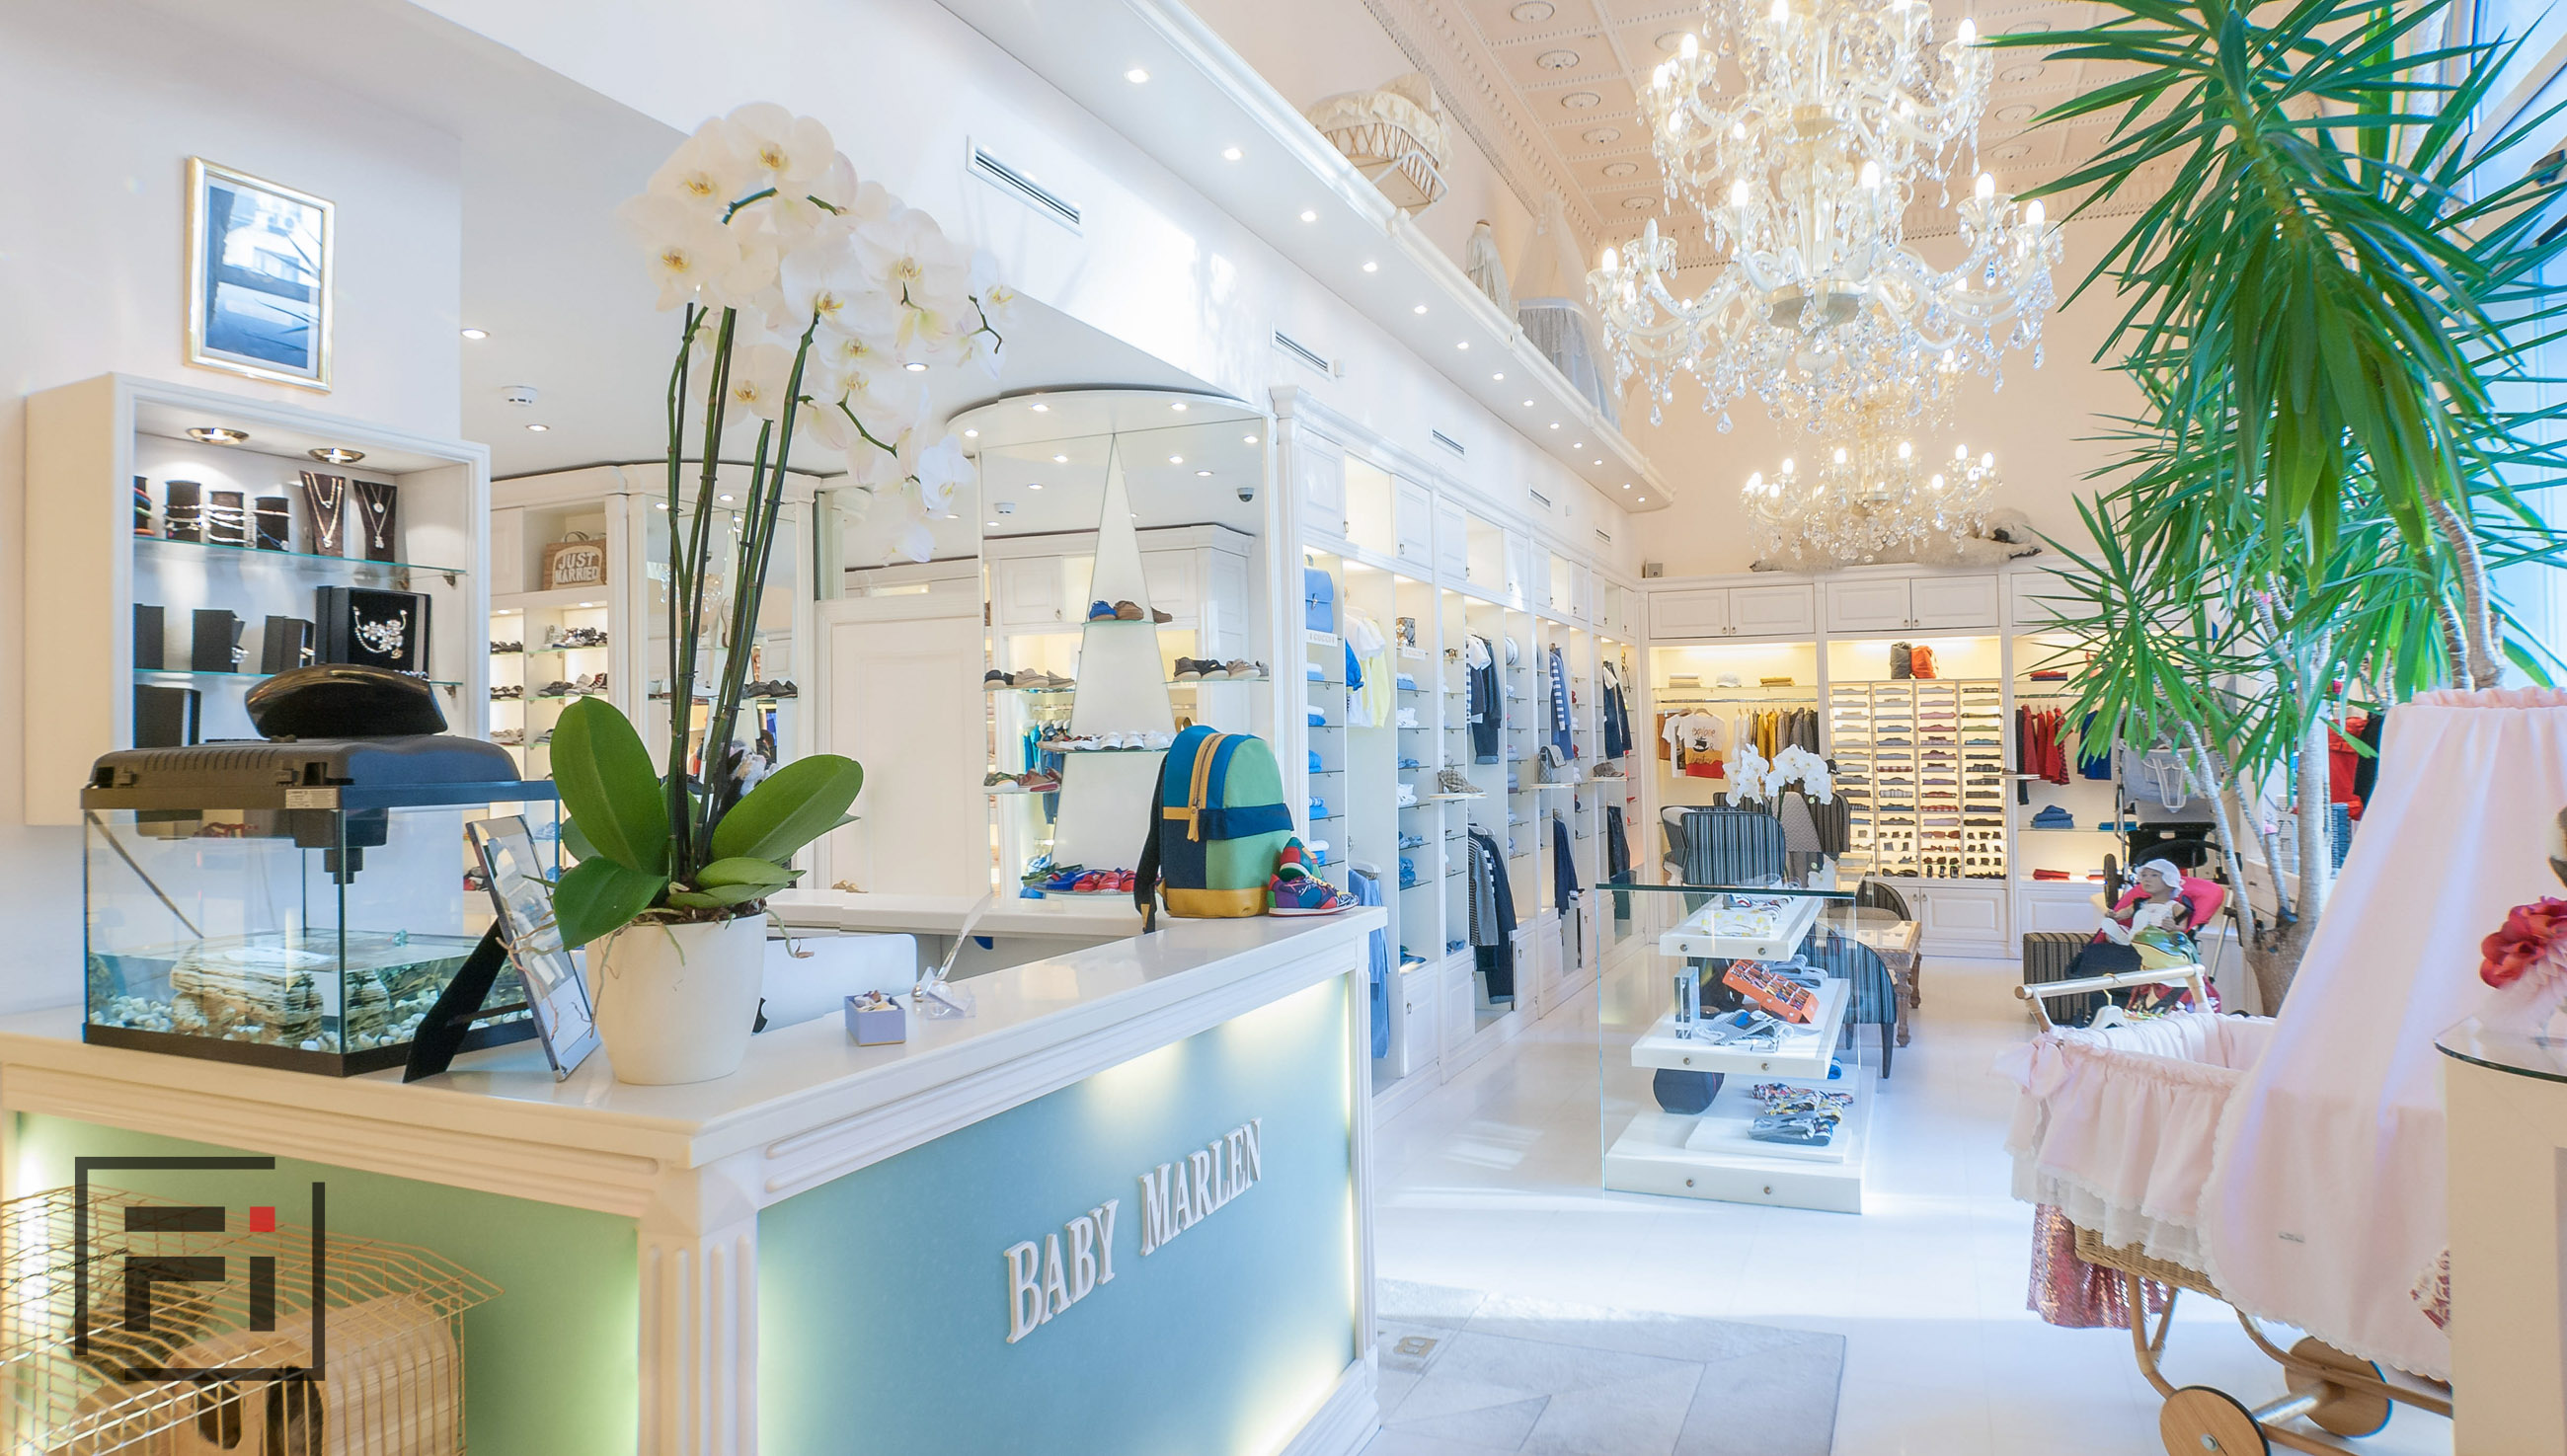 Baby Marlen Helen real estate photo editing services real estate photo retouching of commerce store in Kyiv commercial pro photo made by Fantastic Imago-12